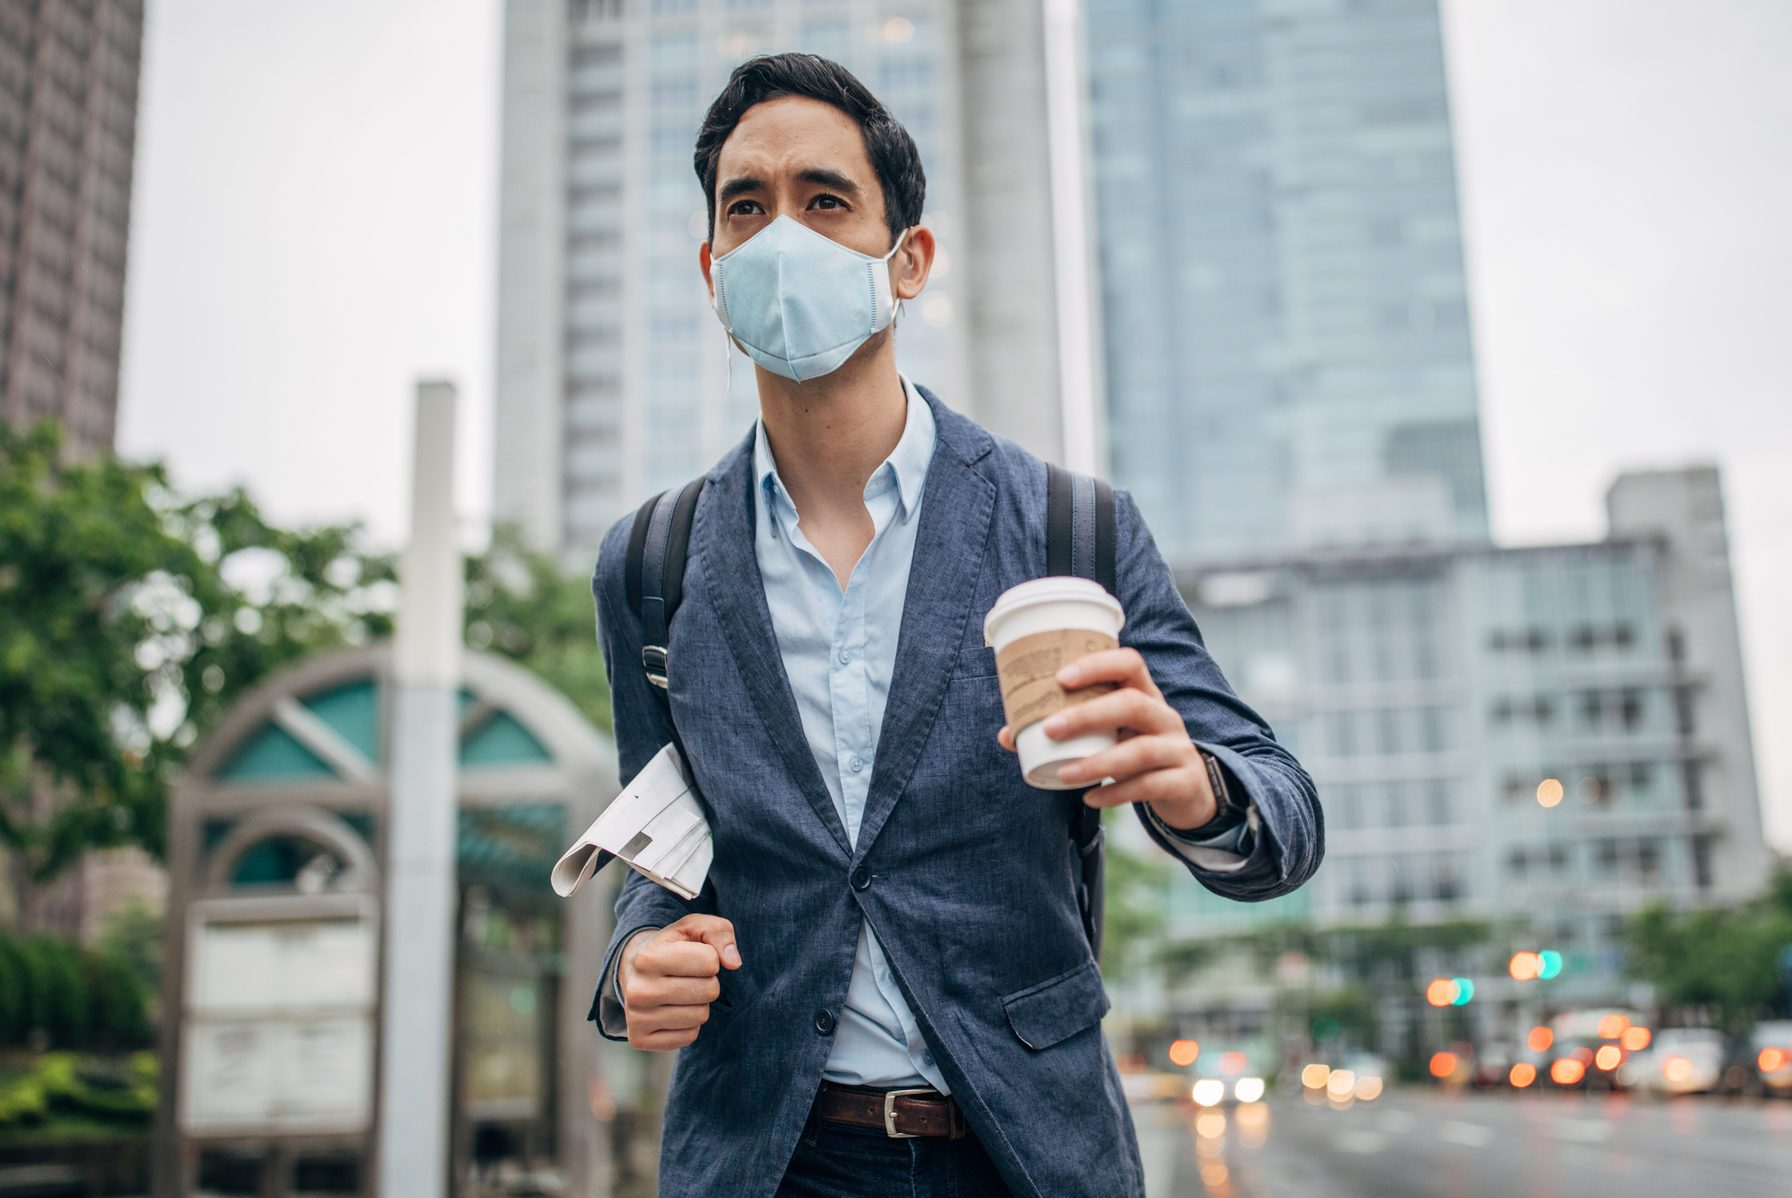 Gentleman with pollution mask in coronavirus infected city downtown